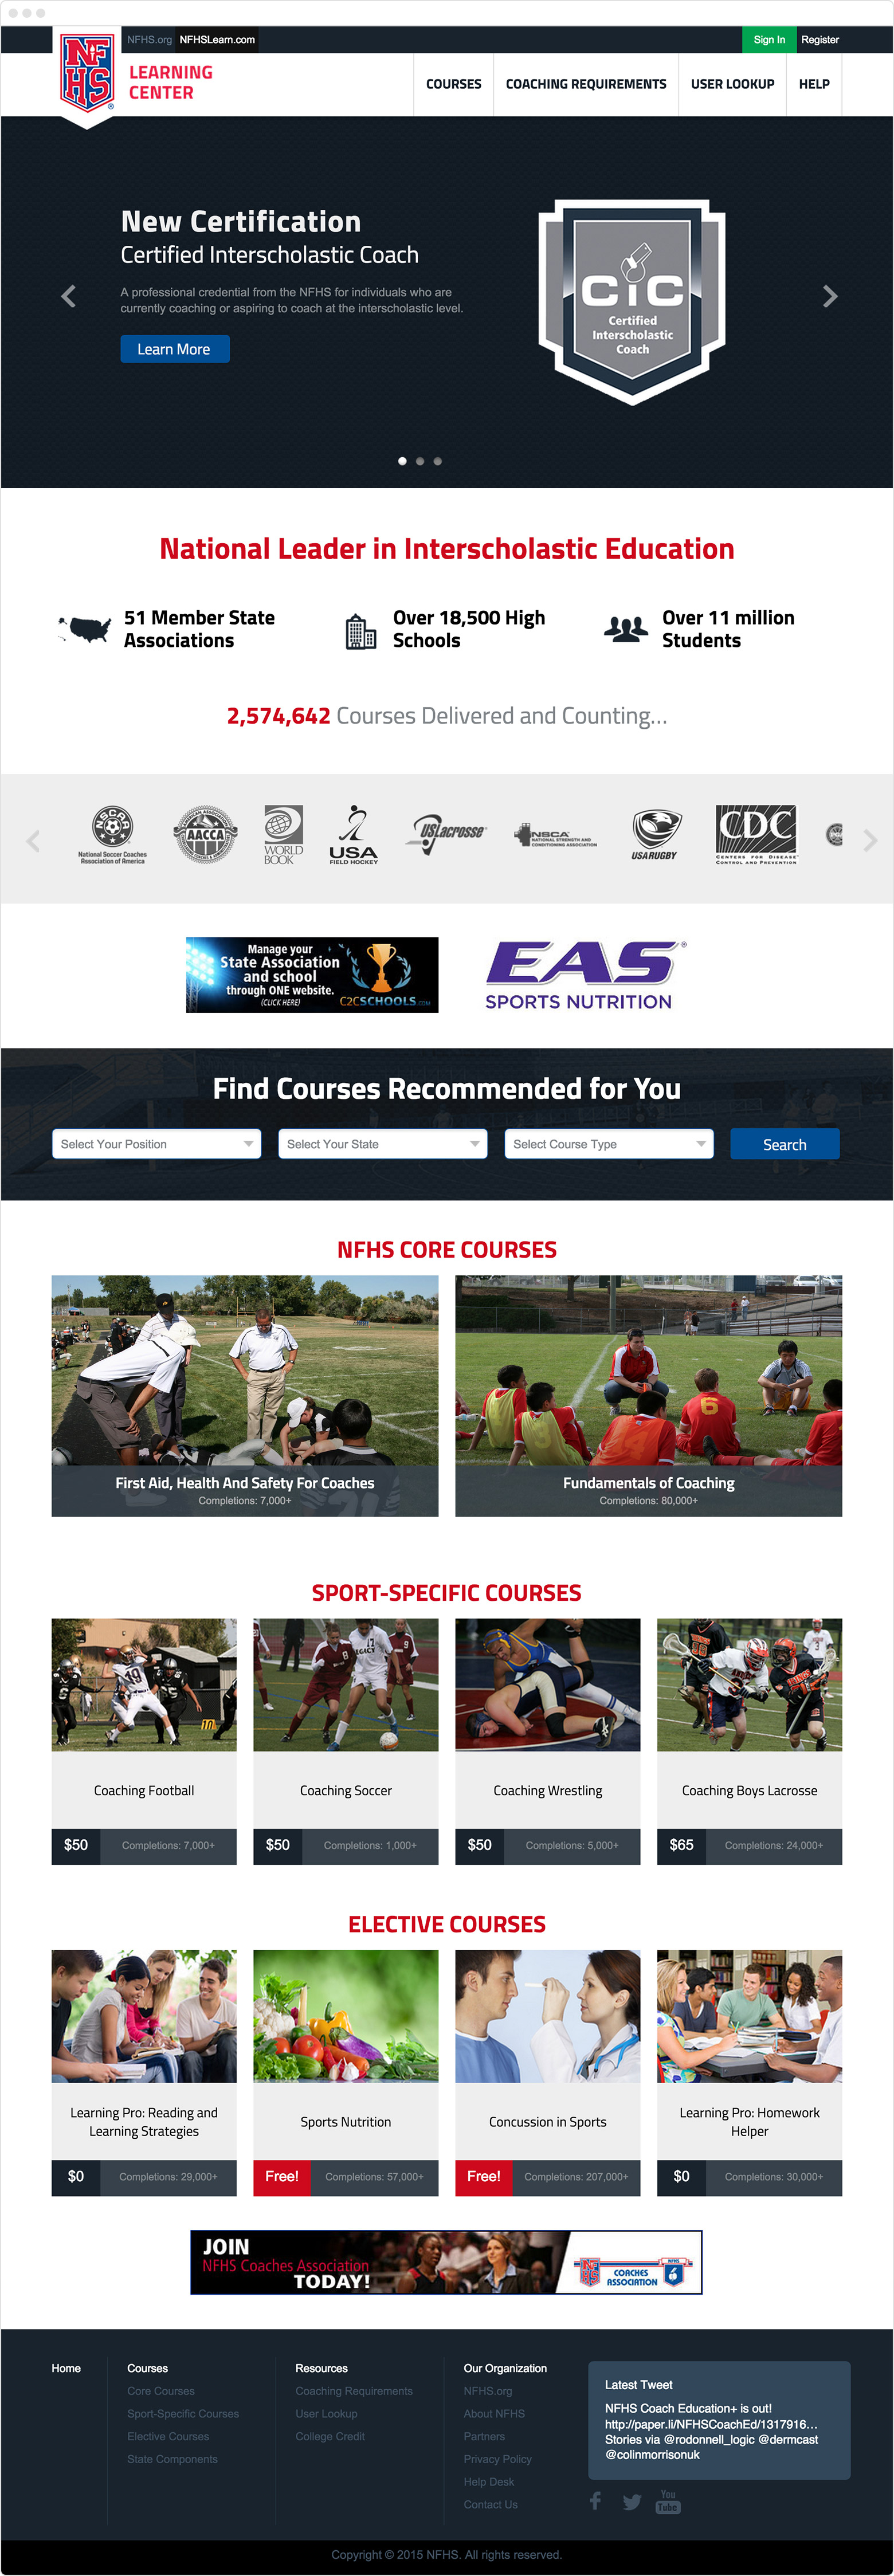 NFHS Learning Center home page